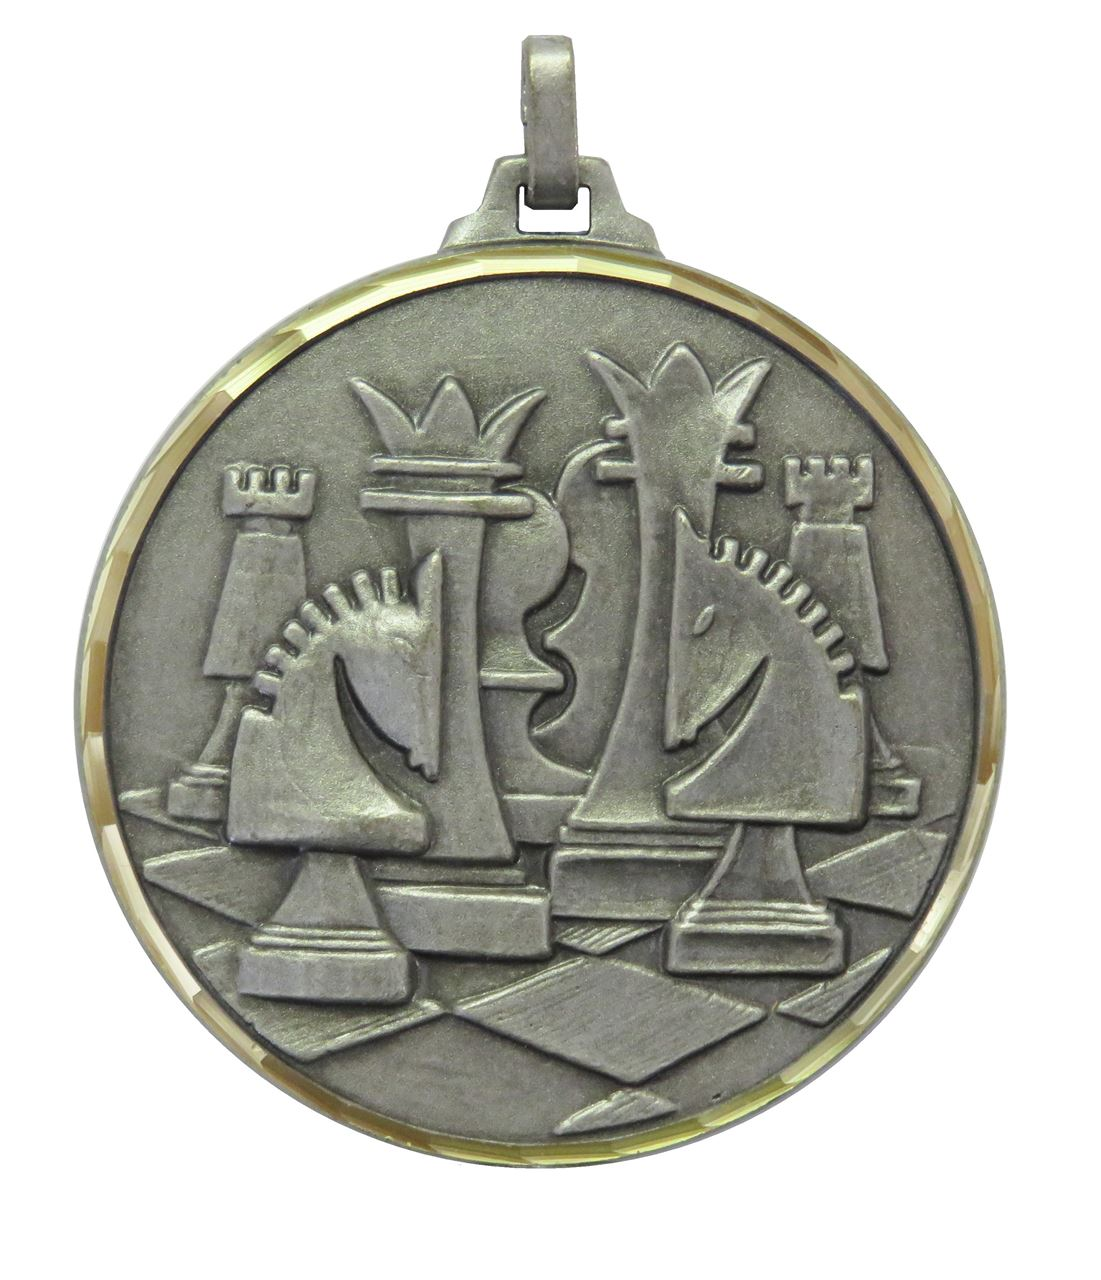 Silver Faceted Chess Medal (size: 52mm) - 376F